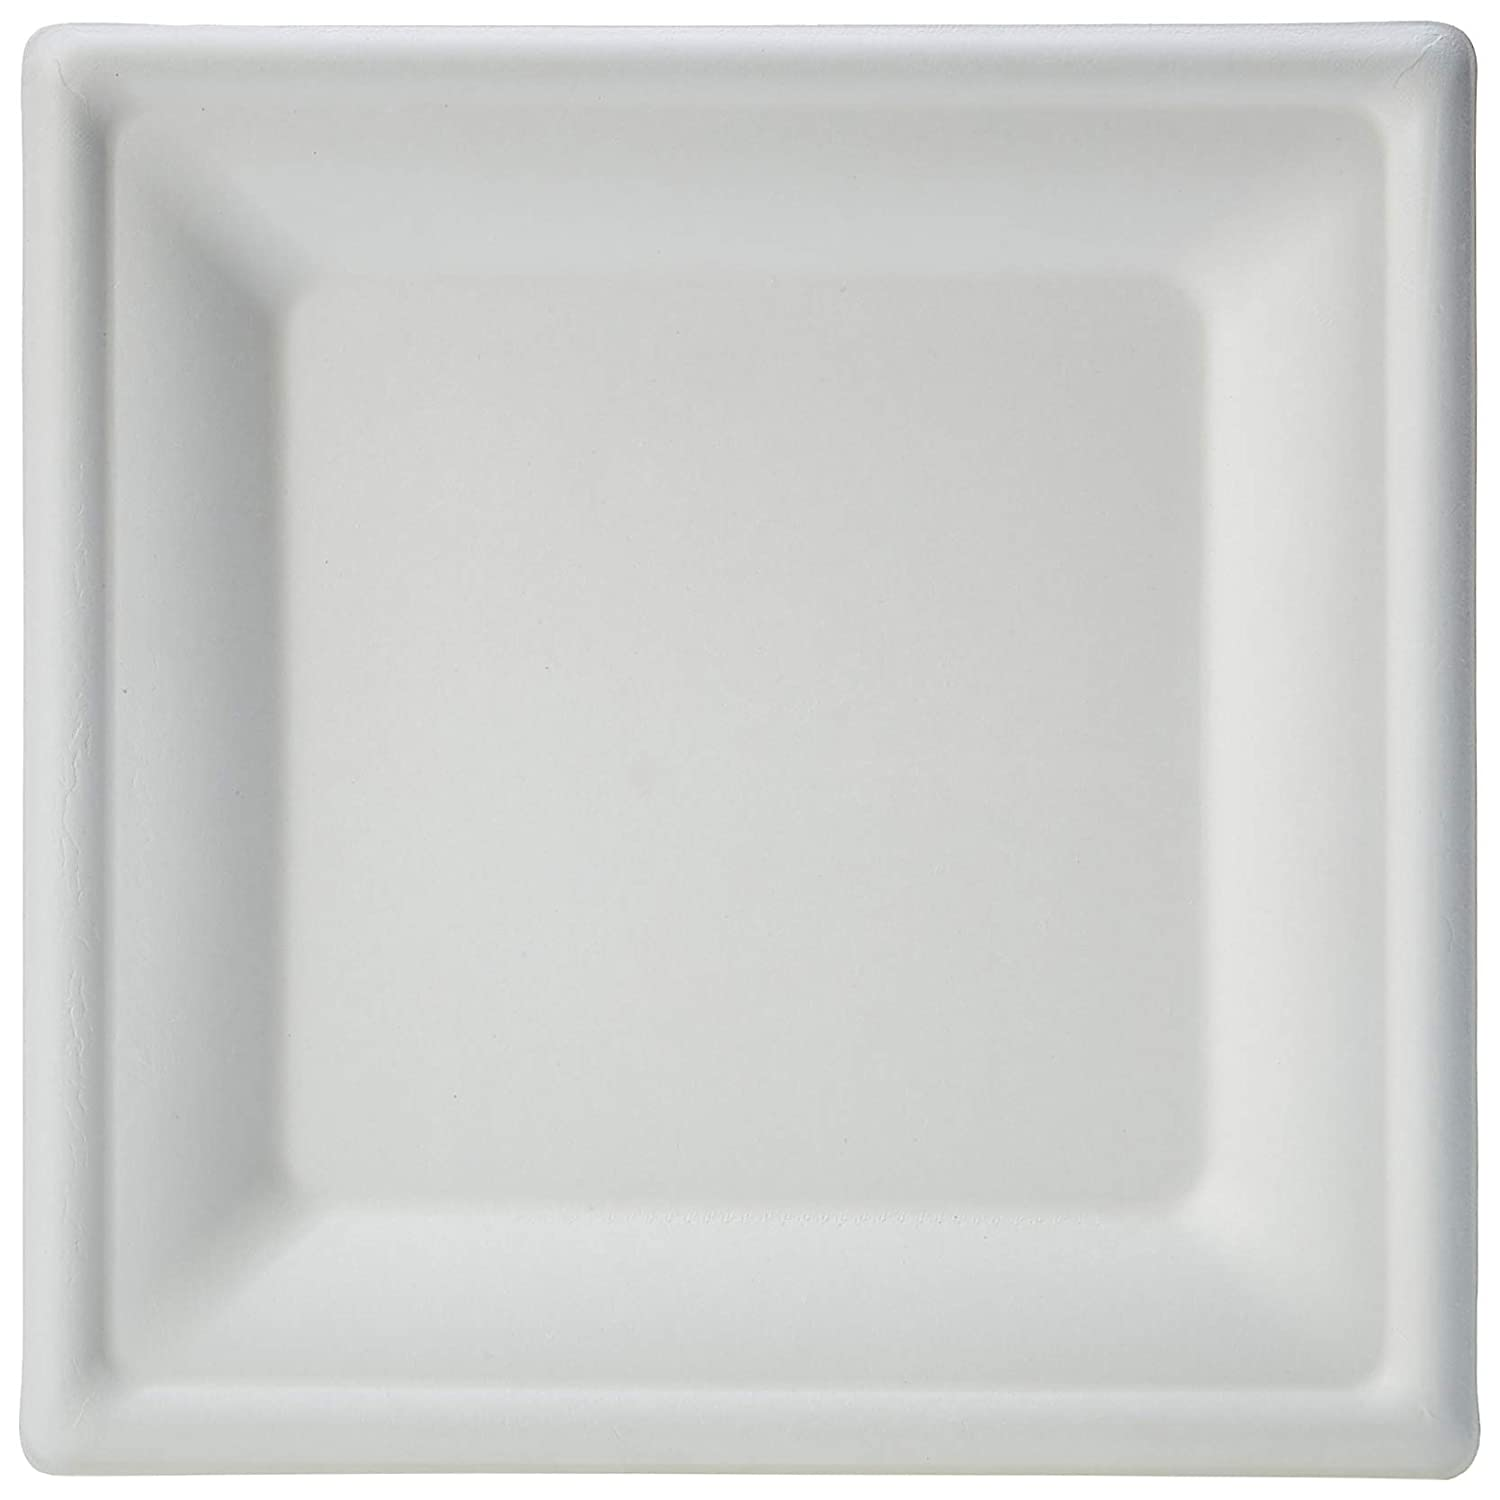 10-Inches AmazonBasics Compostable Square Plate, 8-Inches, 500 Plates